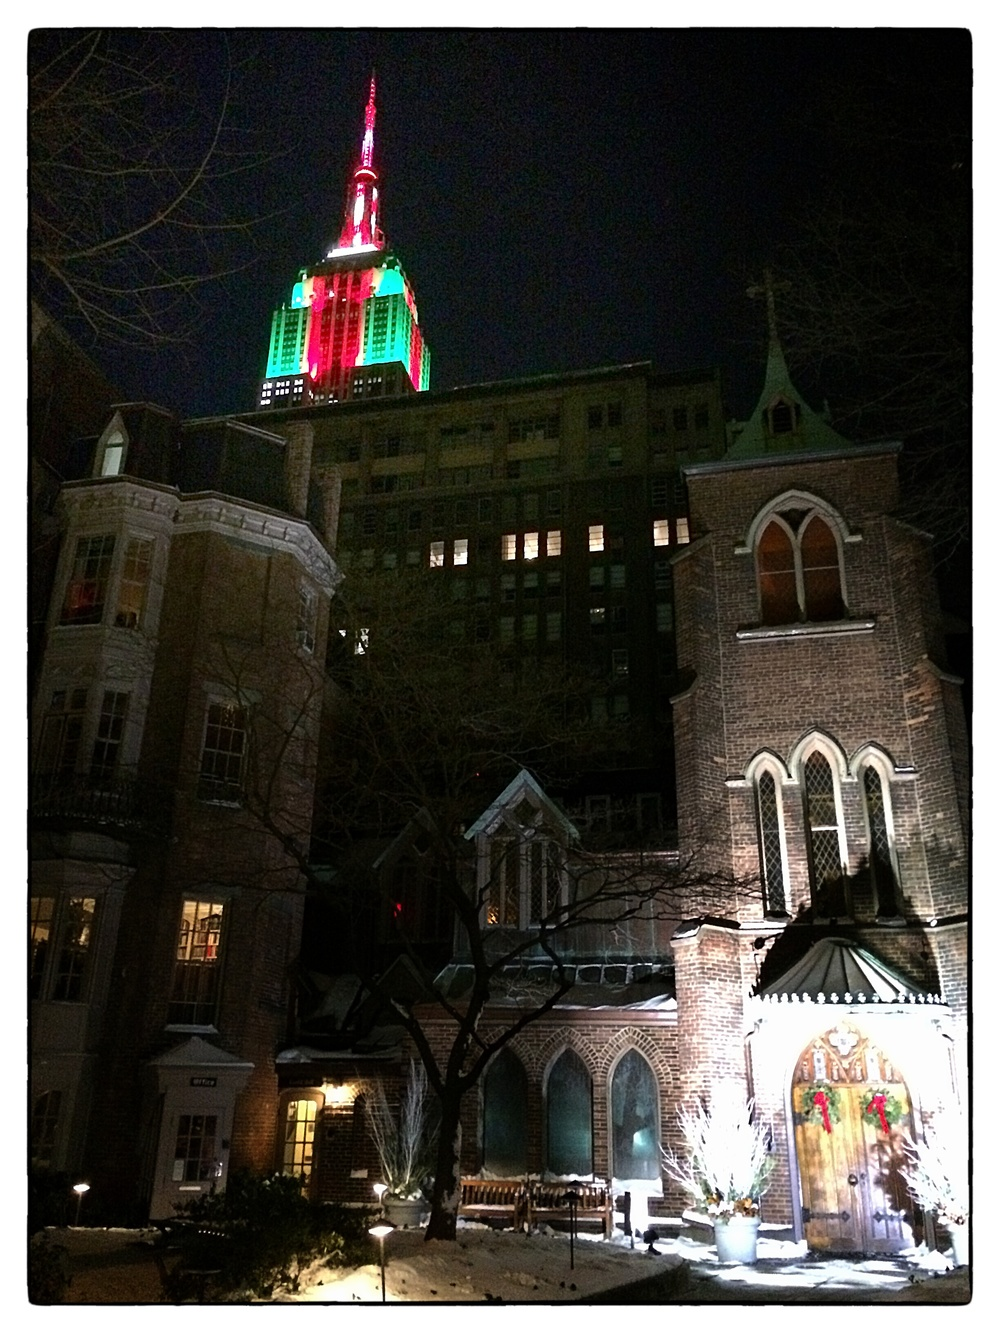 The  Empire State Building  rising above the  Church of the Transfiguration (Episcopal)  on East 29th Street, New York City, shot on January 4, 2014.